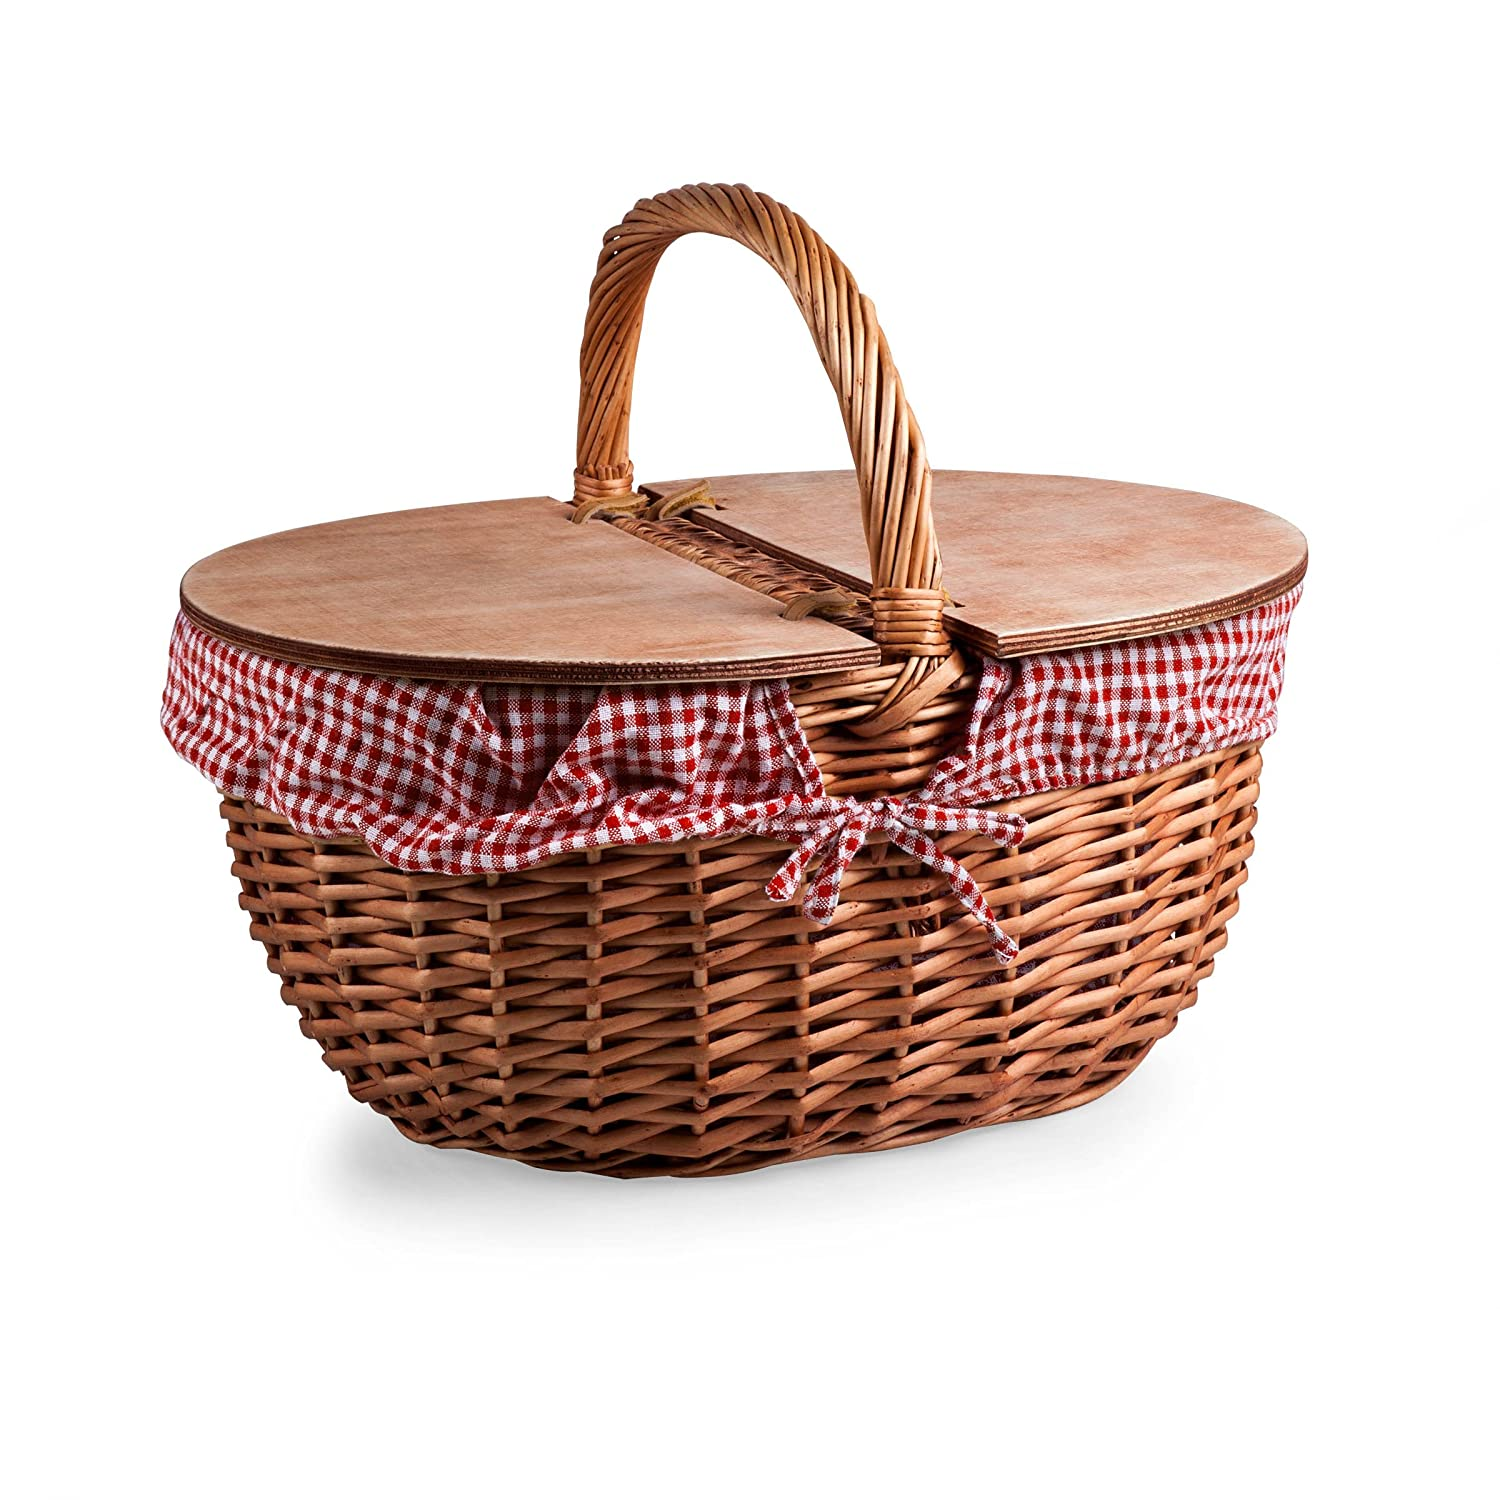 This is an image of a picnic basket